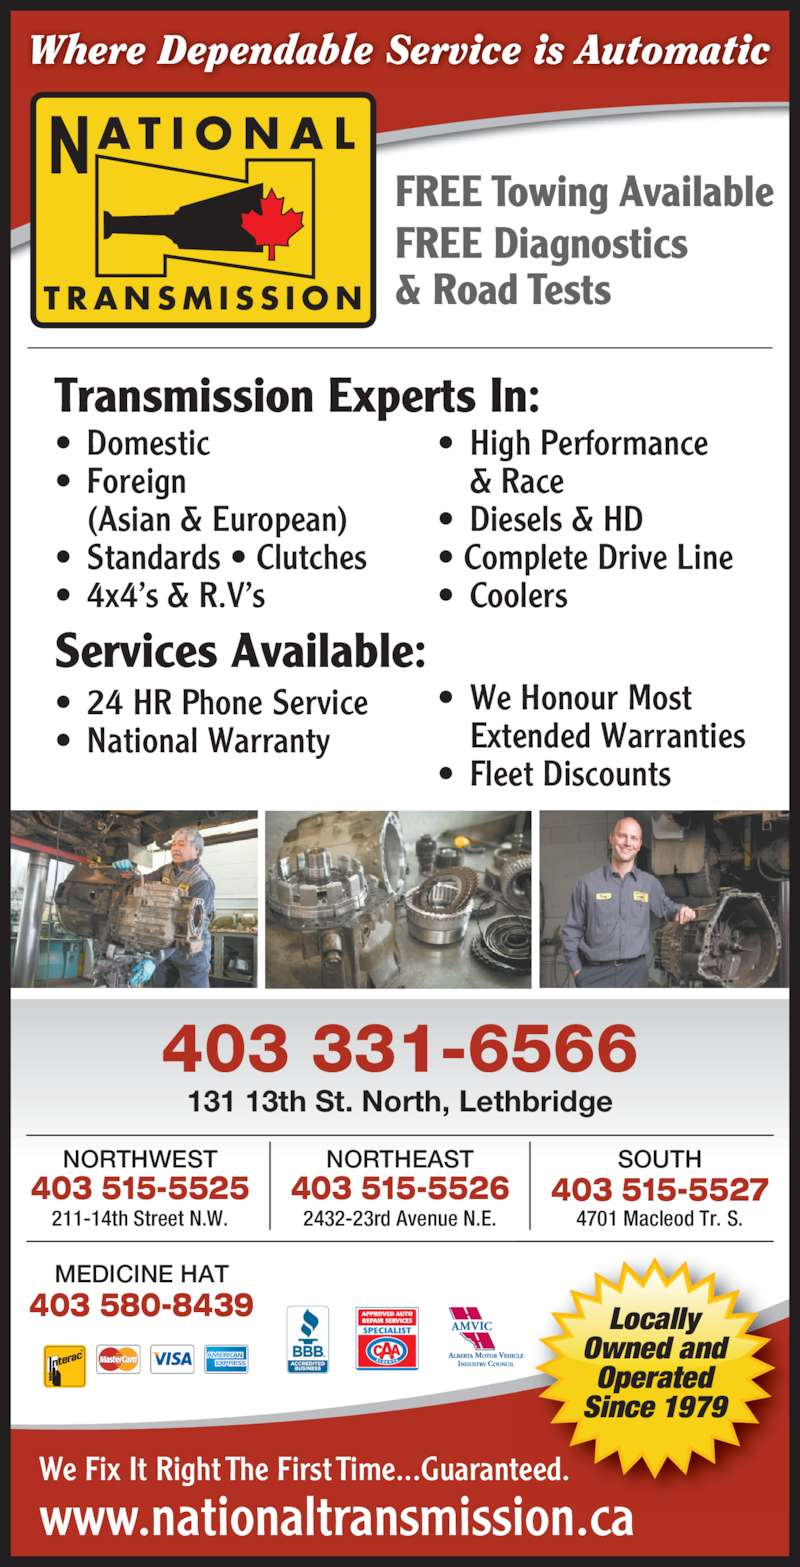 National Transmissions (403-320-0447) - Display Ad - www.nationaltransmission.ca We Fix It Right The First Time...Guaranteed. 403 331-6566 403 580-8439 MEDICINE HAT SOUTH 403 515-5527 4701 Macleod Tr. S. Where Dependable Service is Automatic 403 515-5526 NORTHEAST 2432-23rd Avenue N.E. NORTHWEST FREE Diagnostics & Road Tests FREE Towing Available 403 515-5525 211-14th Street N.W. Transmission Experts In: ? Domestic ? Foreign   (Asian & European) ? Standards ? Clutches ? High Performance   & Race ? Diesels & HD  ? Complete Drive Line ? Coolers Services Available: ? 24 HR Phone Service ? National Warranty ? We Honour Most   Extended Warranties ? Fleet Discounts 131 13th St. North, Lethbridge T R A N S M I S S I O N AT I O N A LN Locally Owned and Operated Since 1979 ? 4x4?s & R.V?s